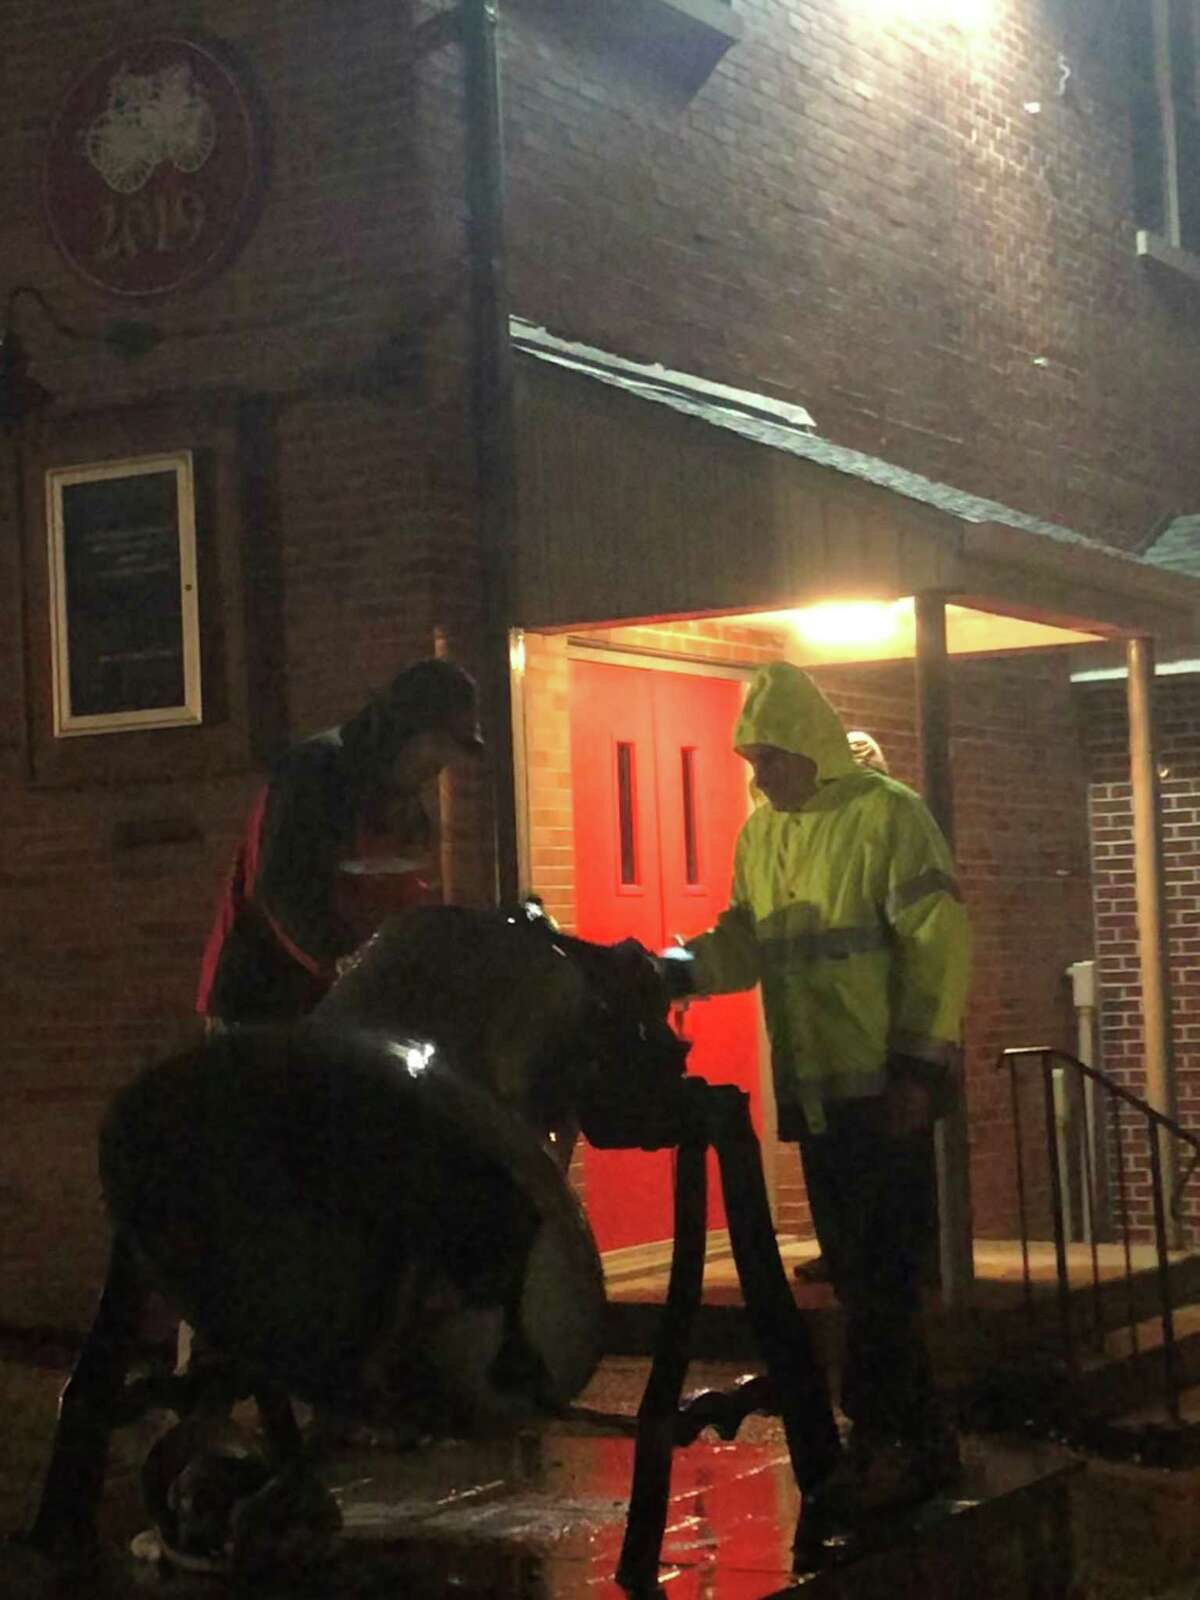 Members of Water Witch Hose Co. #2 in New Milford are ringing the historic bell in front of the firehouse every night at 8 p.m. in a show of unity, according to Fire Chief Rich Squires. The bell ringing will continue each night until the directive to stay at home is lifted. Above, Rich Squires last Saturday night.